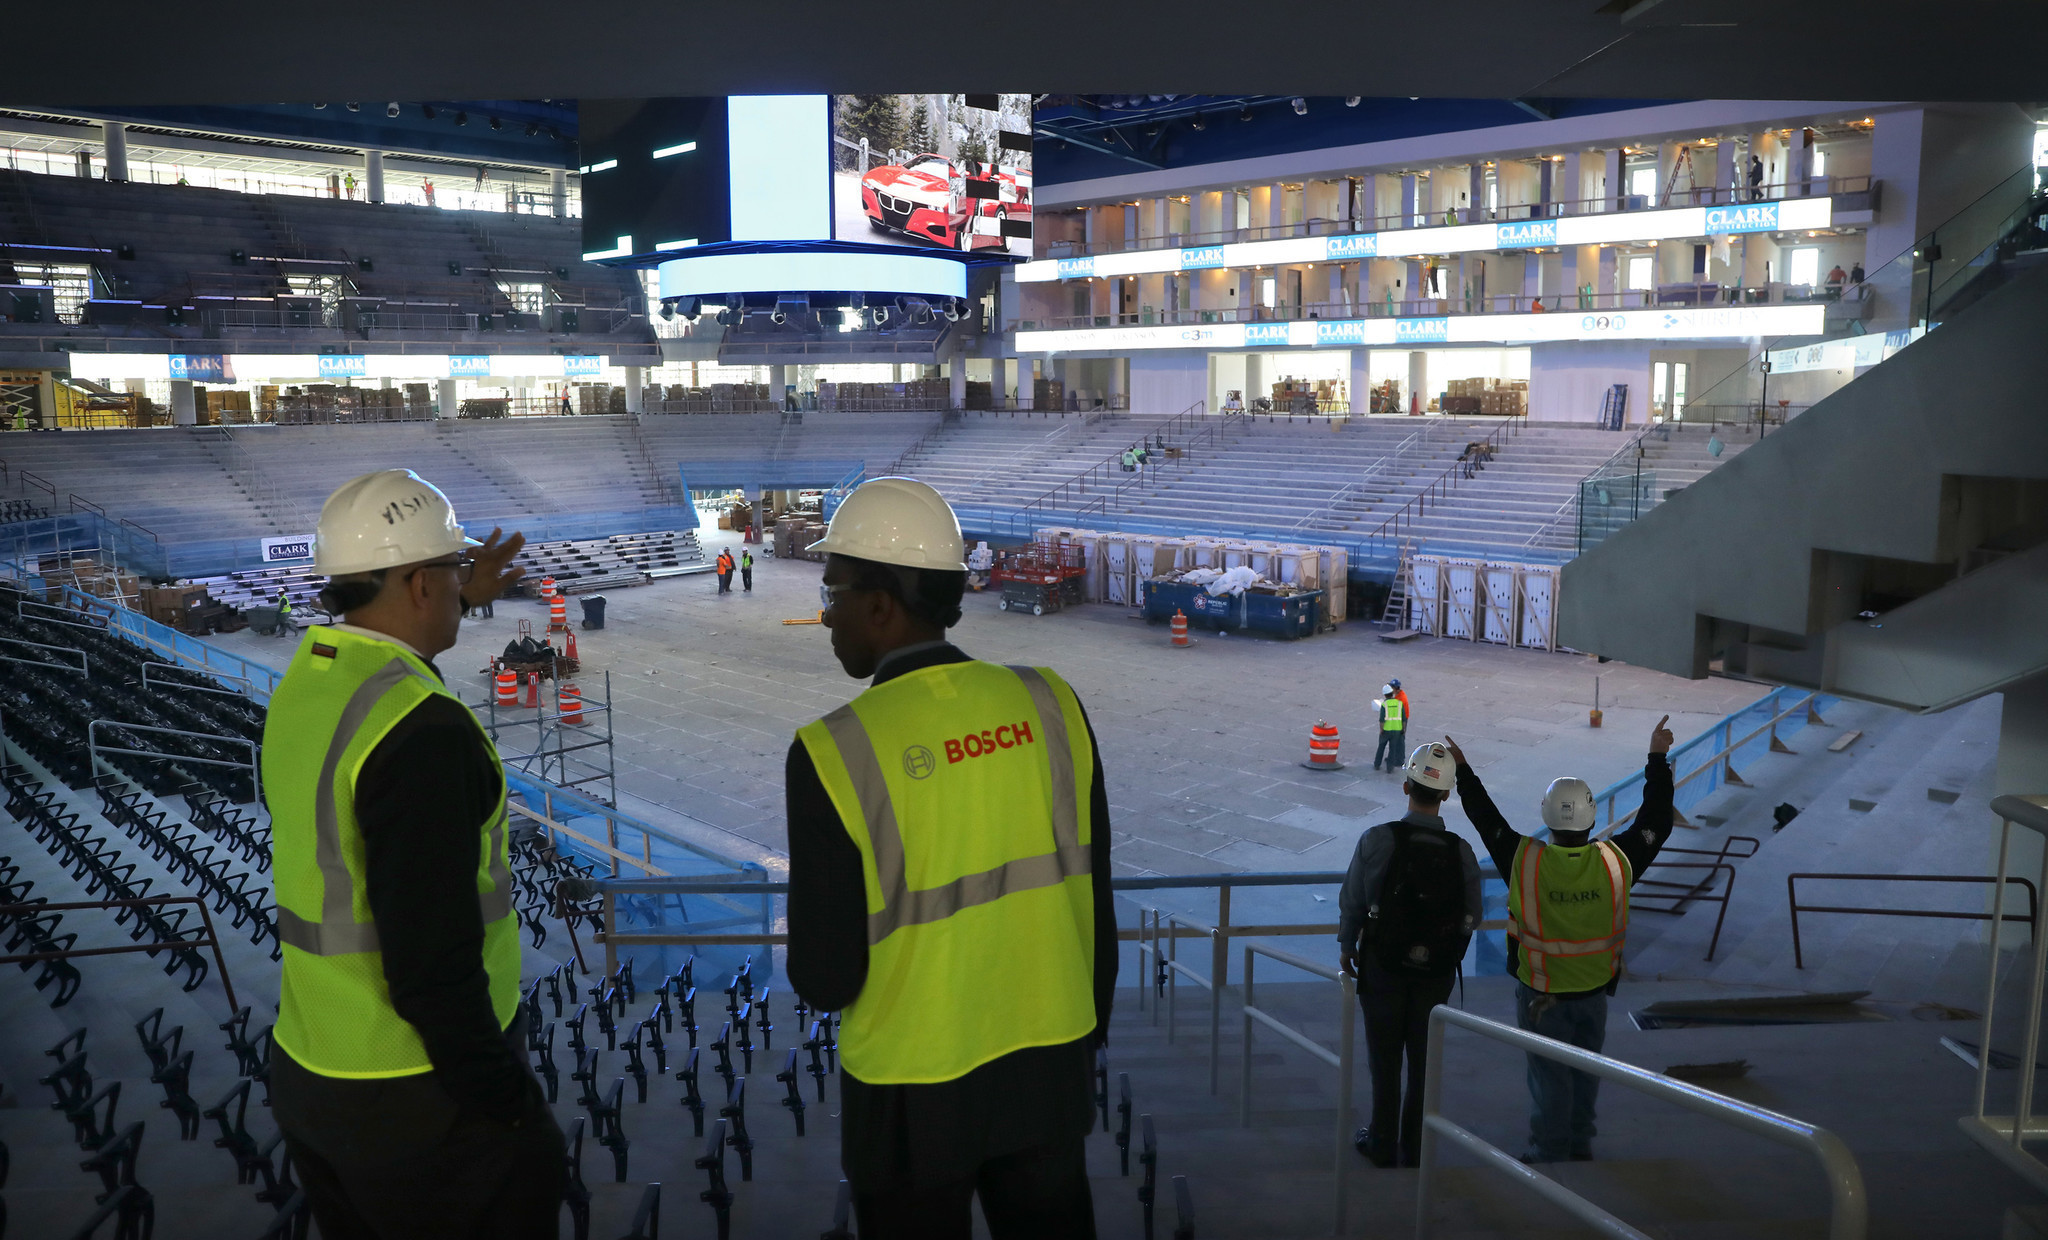 Exterior: Inside Wintrust Arena, Home To The Sky And DePaul